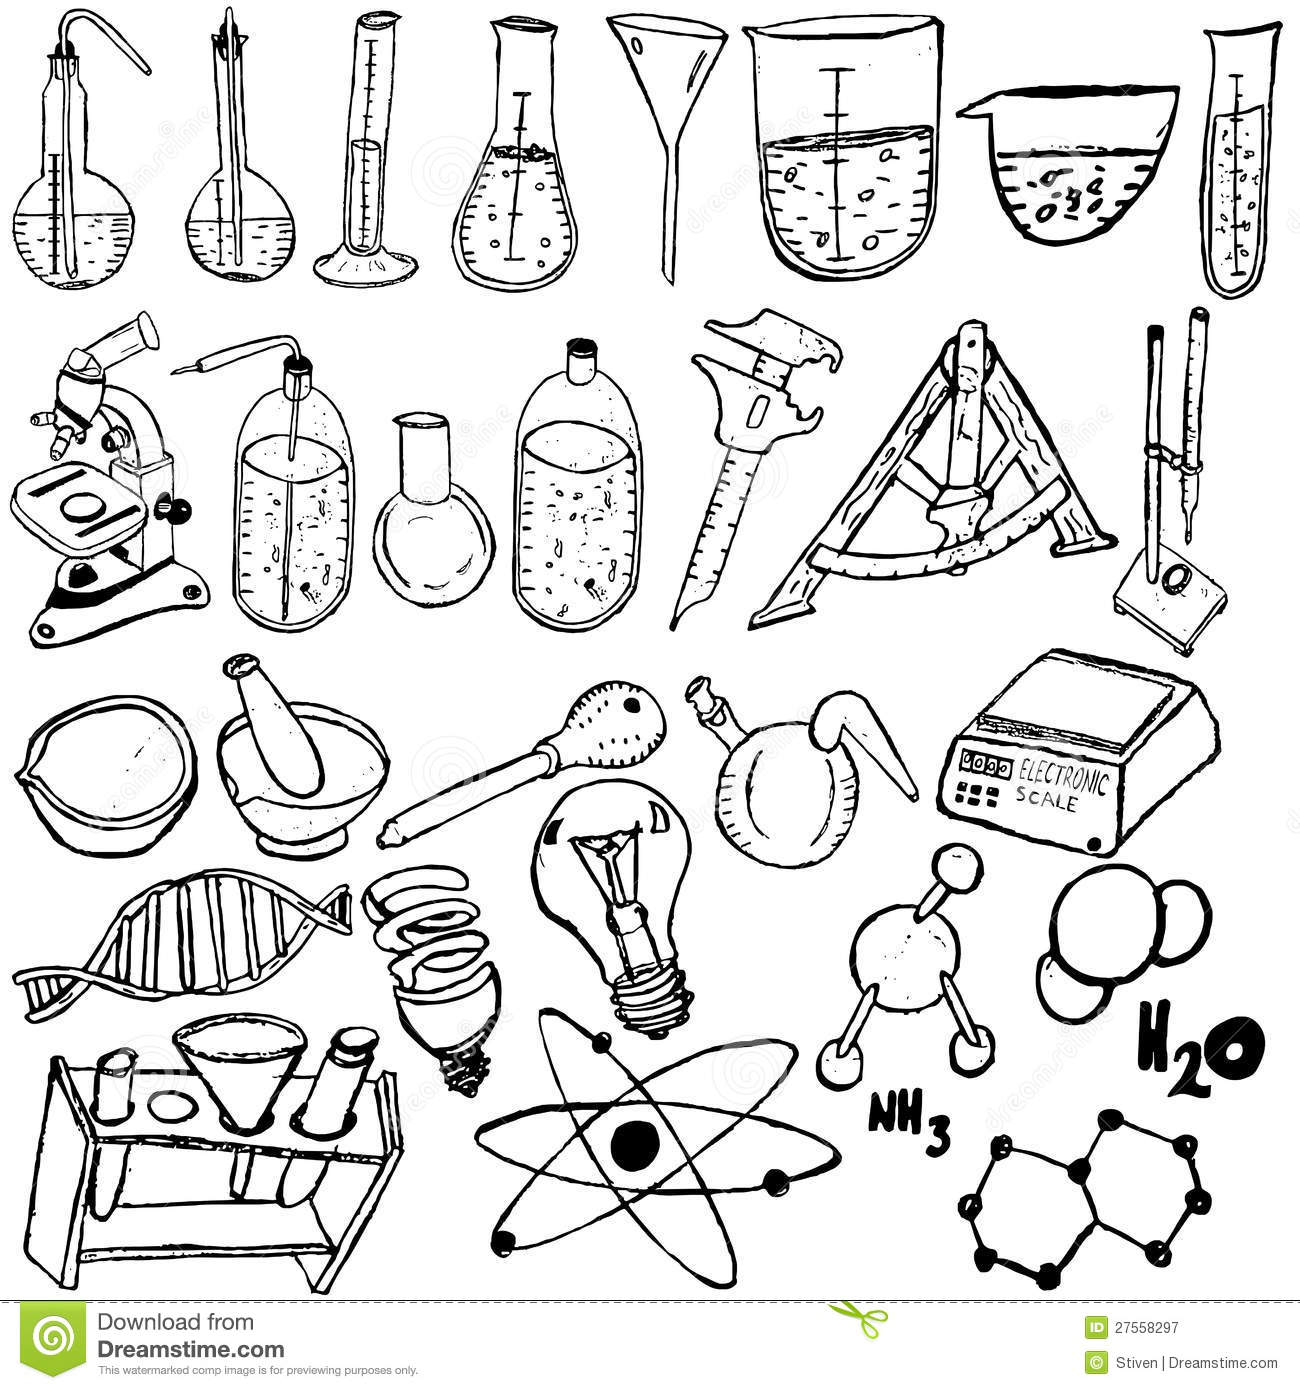 Stock Illustration Pharmacist Icon Black Set Pharmacy Icons Doctors Avatars Pills Capsules Isolated Vector Illustration Image47033207 also Royalty Free Stock Photography Science Icons Sketch Image27558297 also Letterheads likewise Science Logos Template 713859 further Large Glass Bottles For Water Storage. on flask design